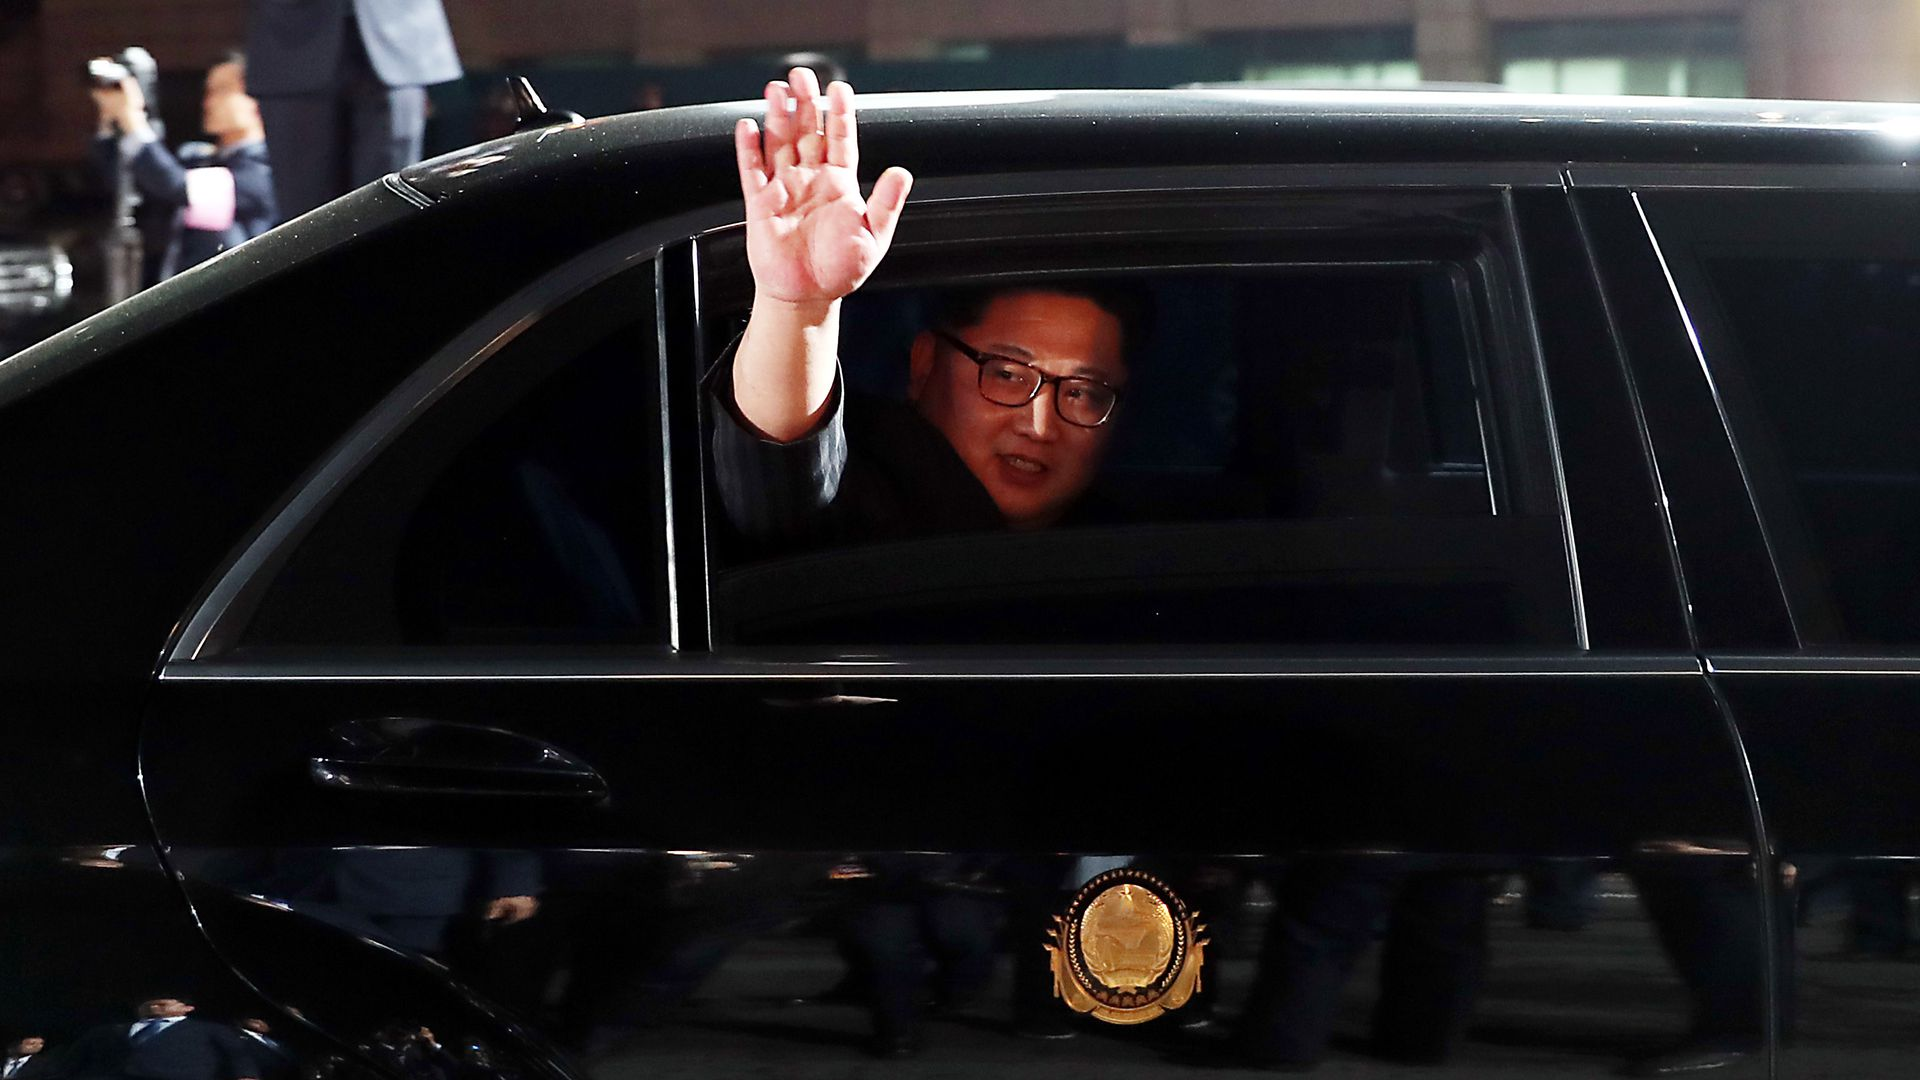 Kim Jong-un waves from a black limo.